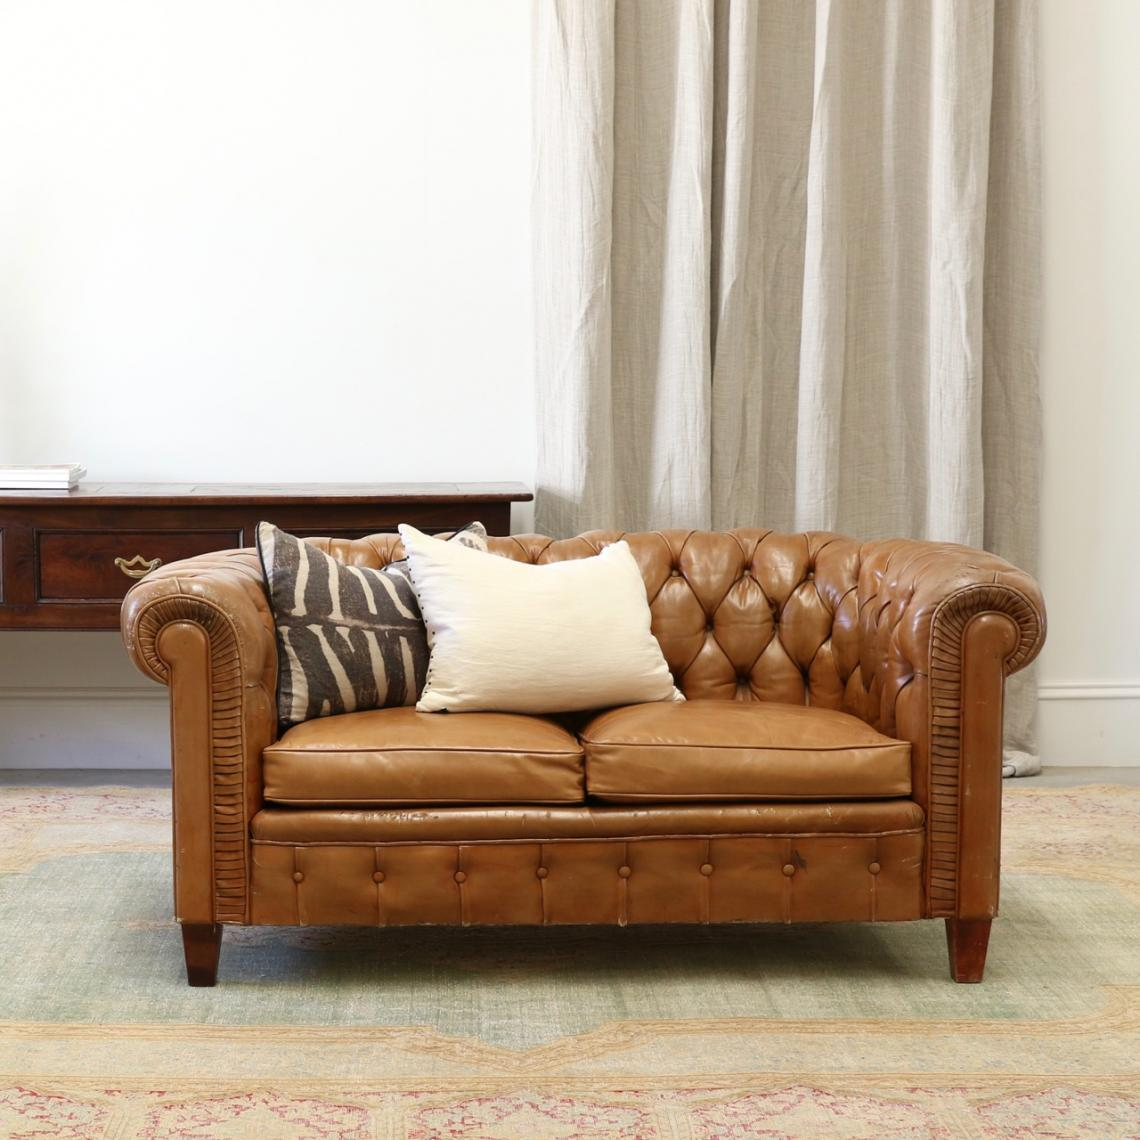 109-45 - A Two Seater Chesterfield